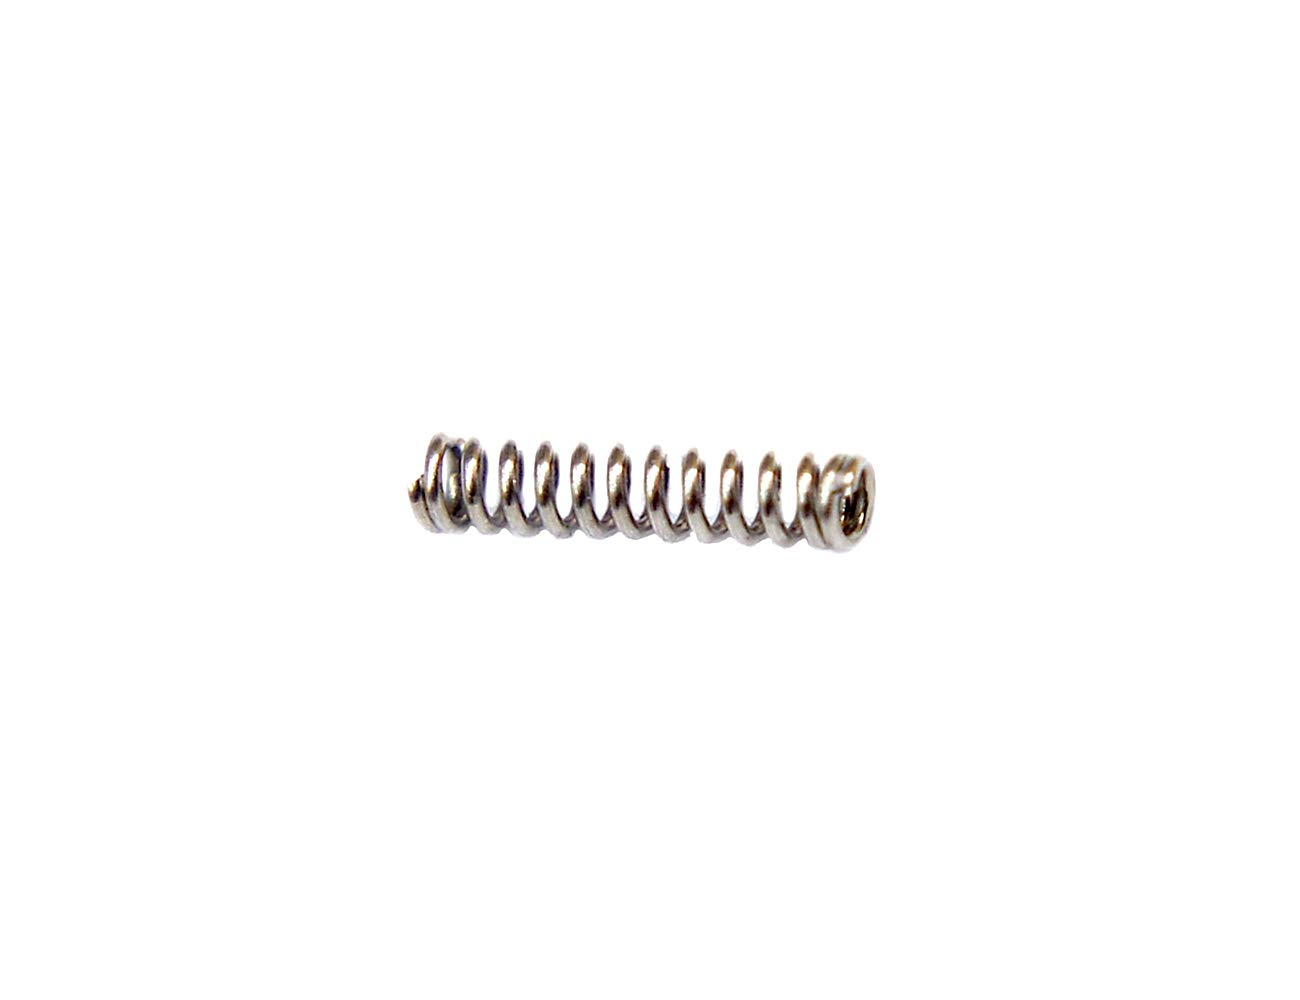 XJS 1.4x8.0x52mm Metal Dual Hook Small Tension Spring 10 pcs